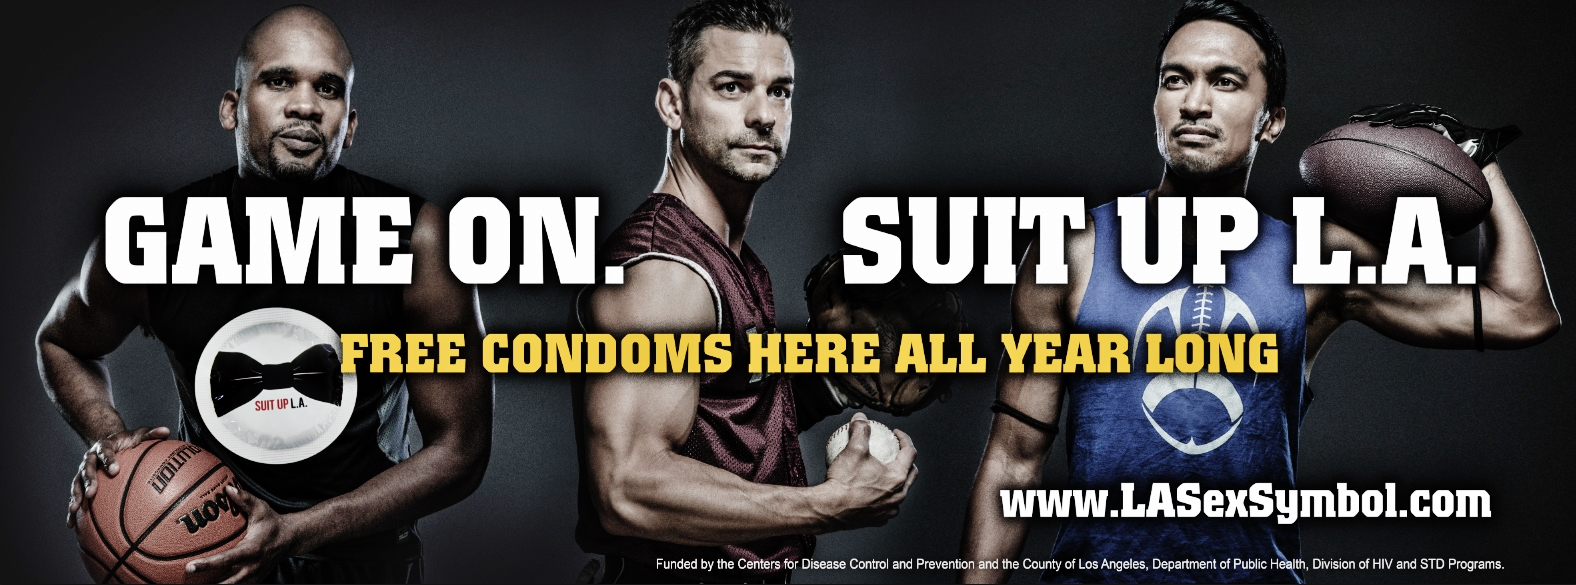 Openly Gay Athletes Suit Up for LA Condom campaign